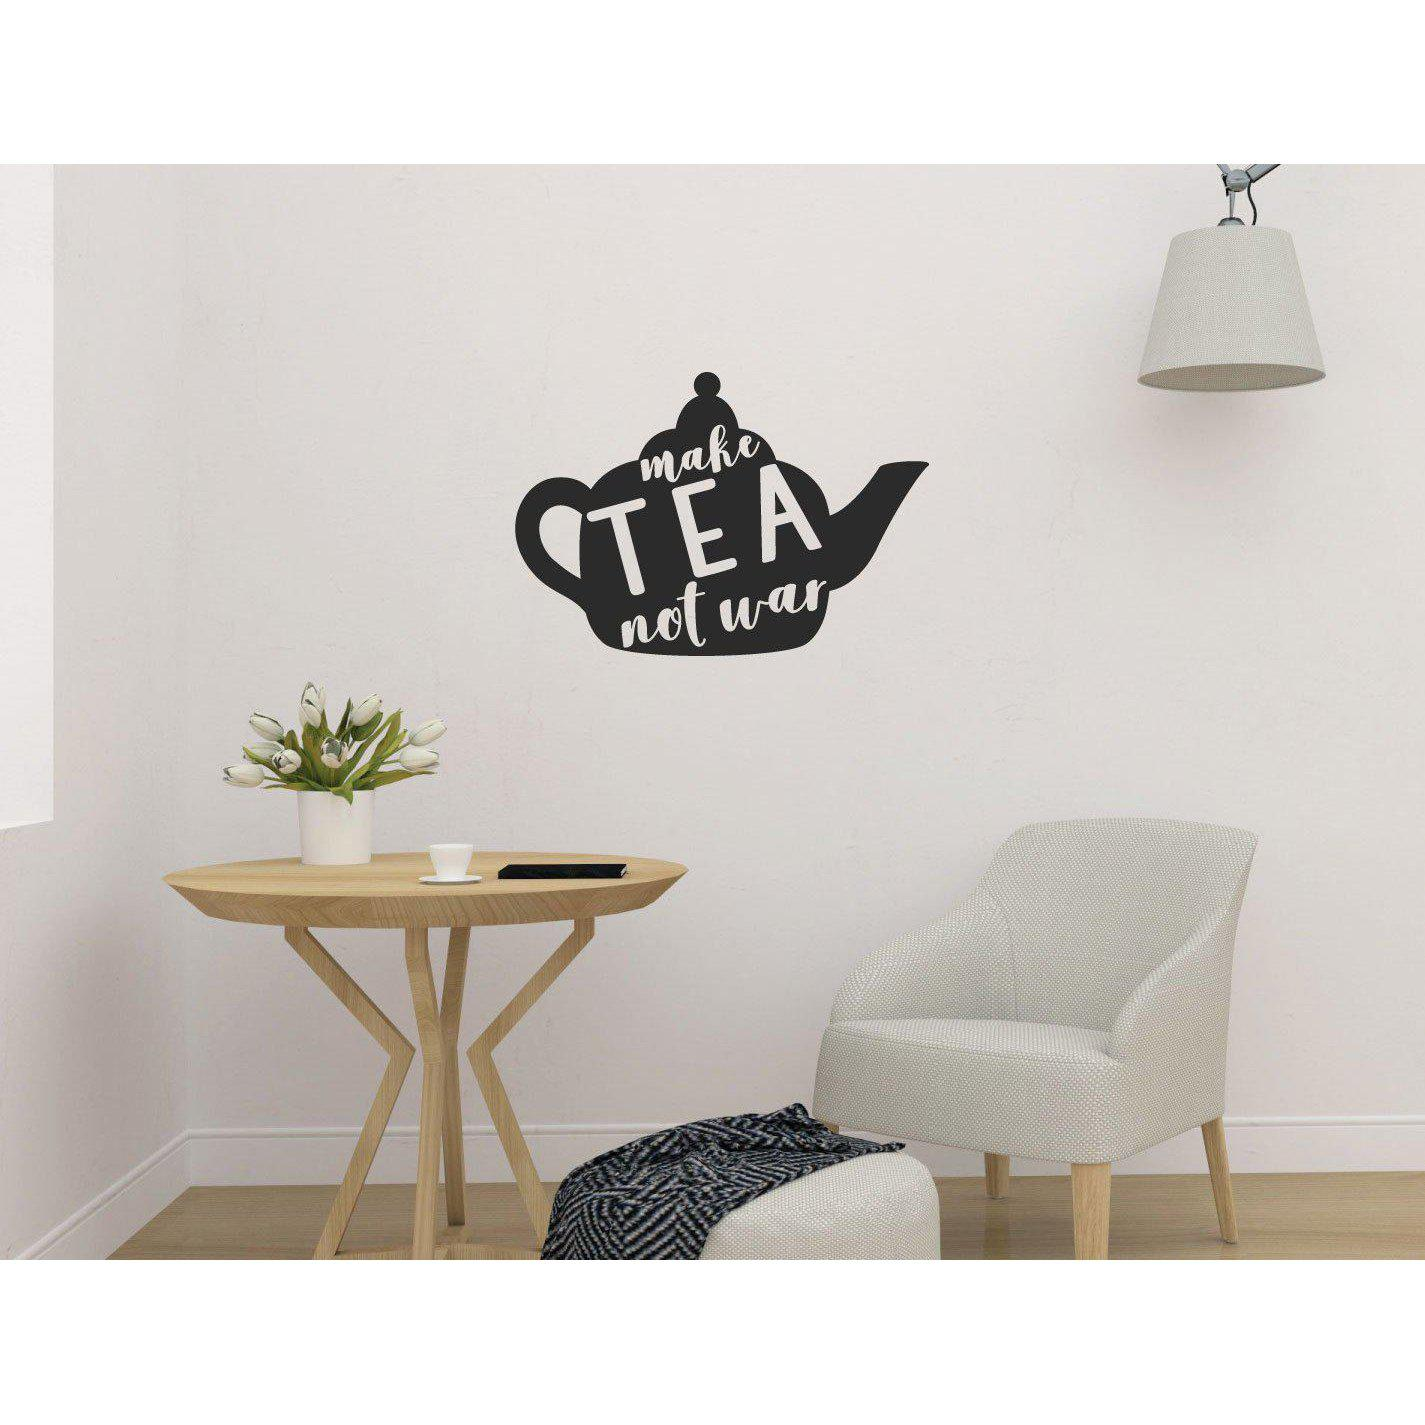 Make Tea Not War Funny Kitchen/Dining Wall Sticker Quote Wall Decal Quote Home Wall Art (36 Colours)